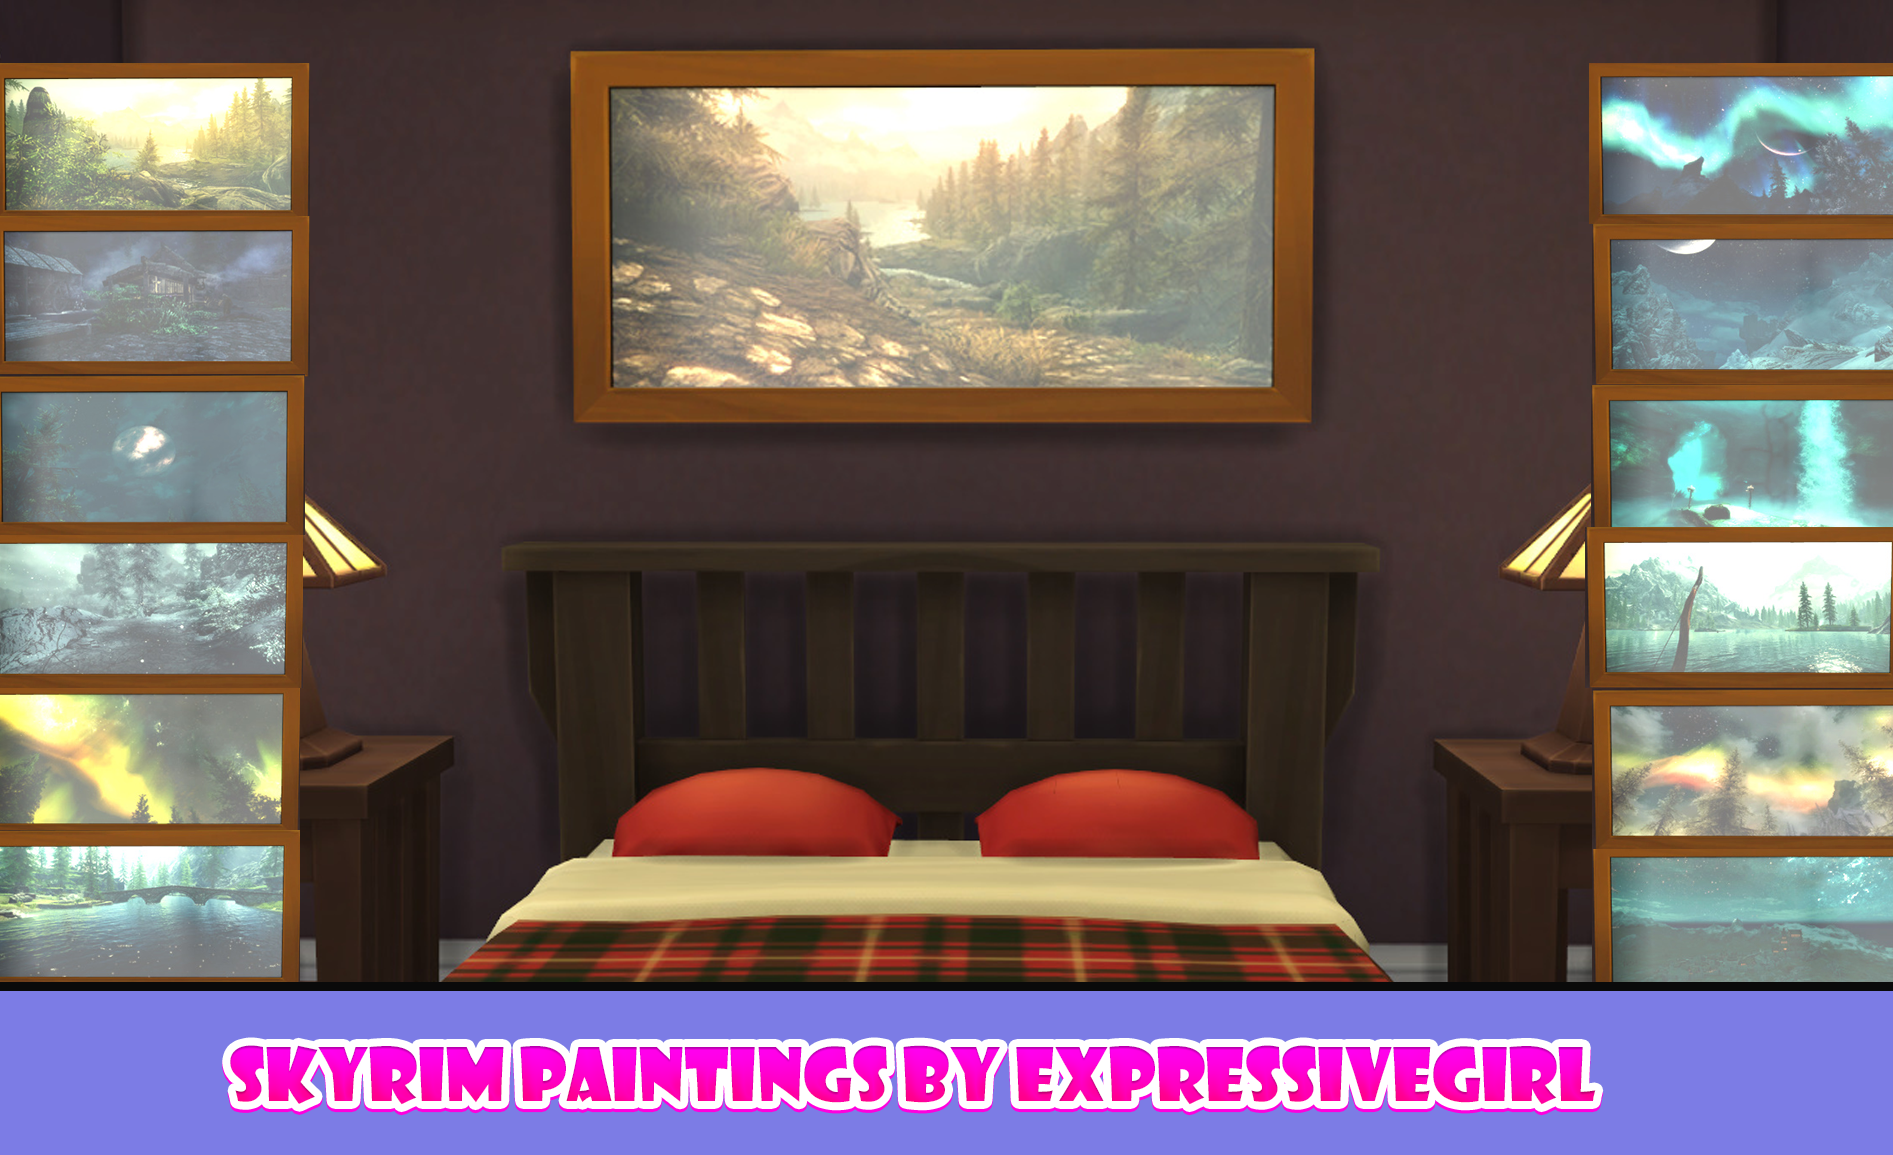 Skyrim Paintings by Expressive Girl